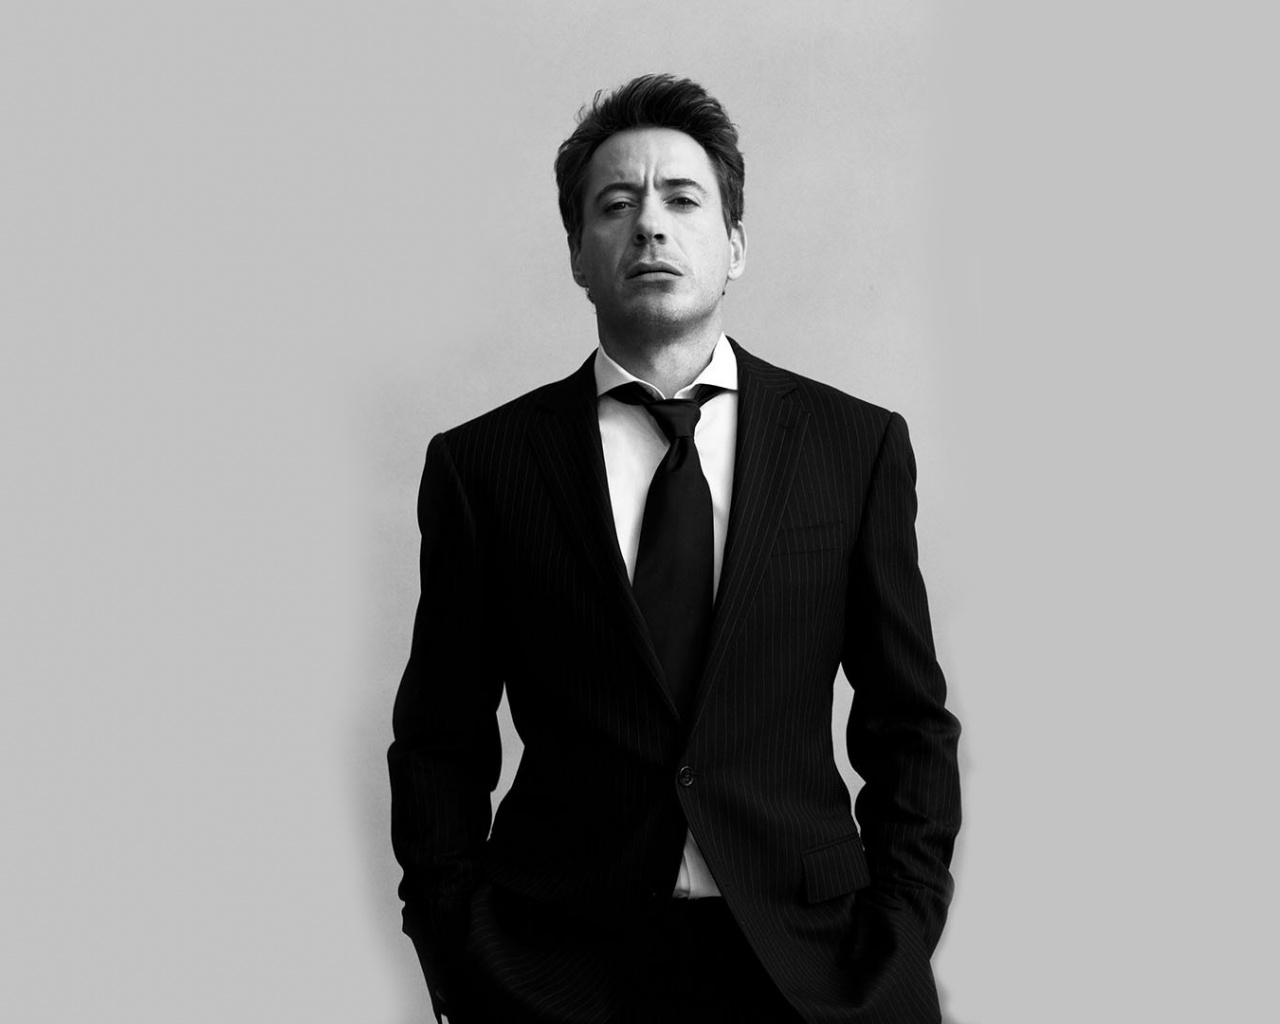 1280x1024 Robert Downey Junior Black Suit desktop PC and Mac wallpaper Robert Downey